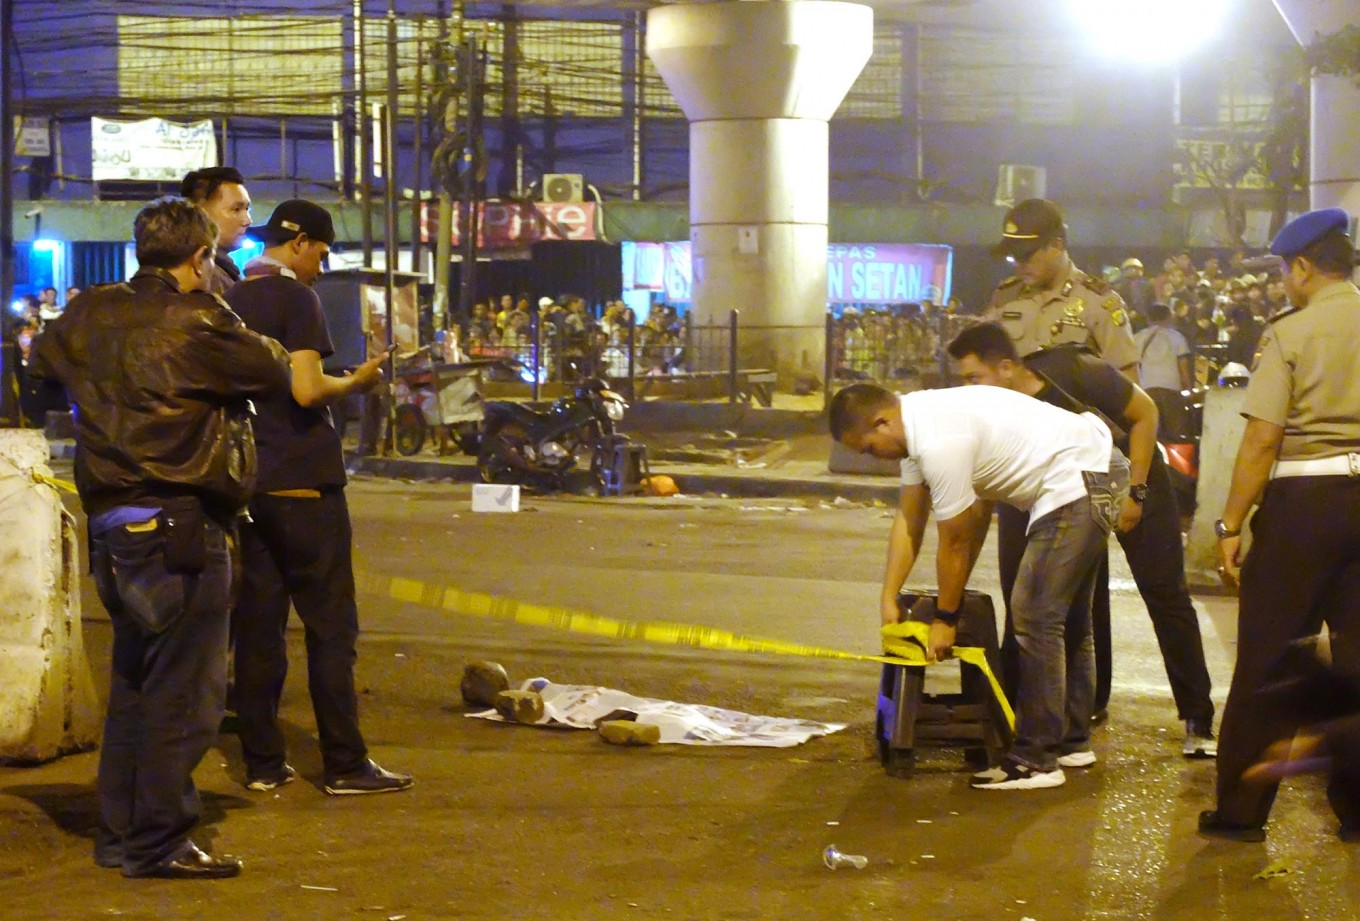 Jakarta shocked by deadly bombings days before Ramadhan